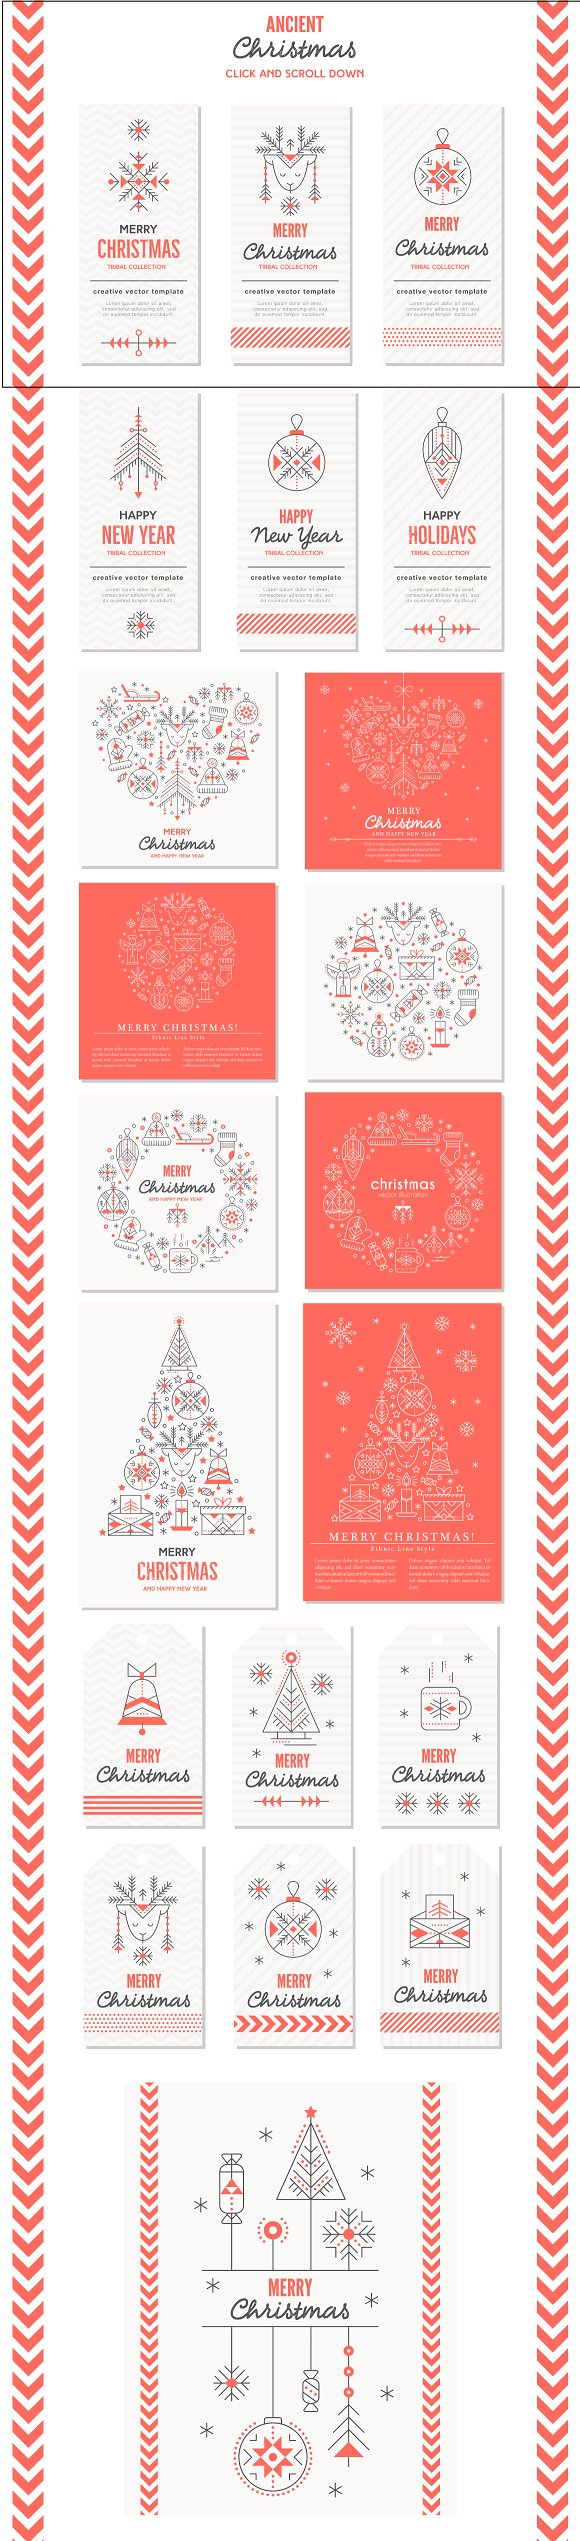 Ancient Christmas: Design Collection ~ Illustrations ~ Creative Market